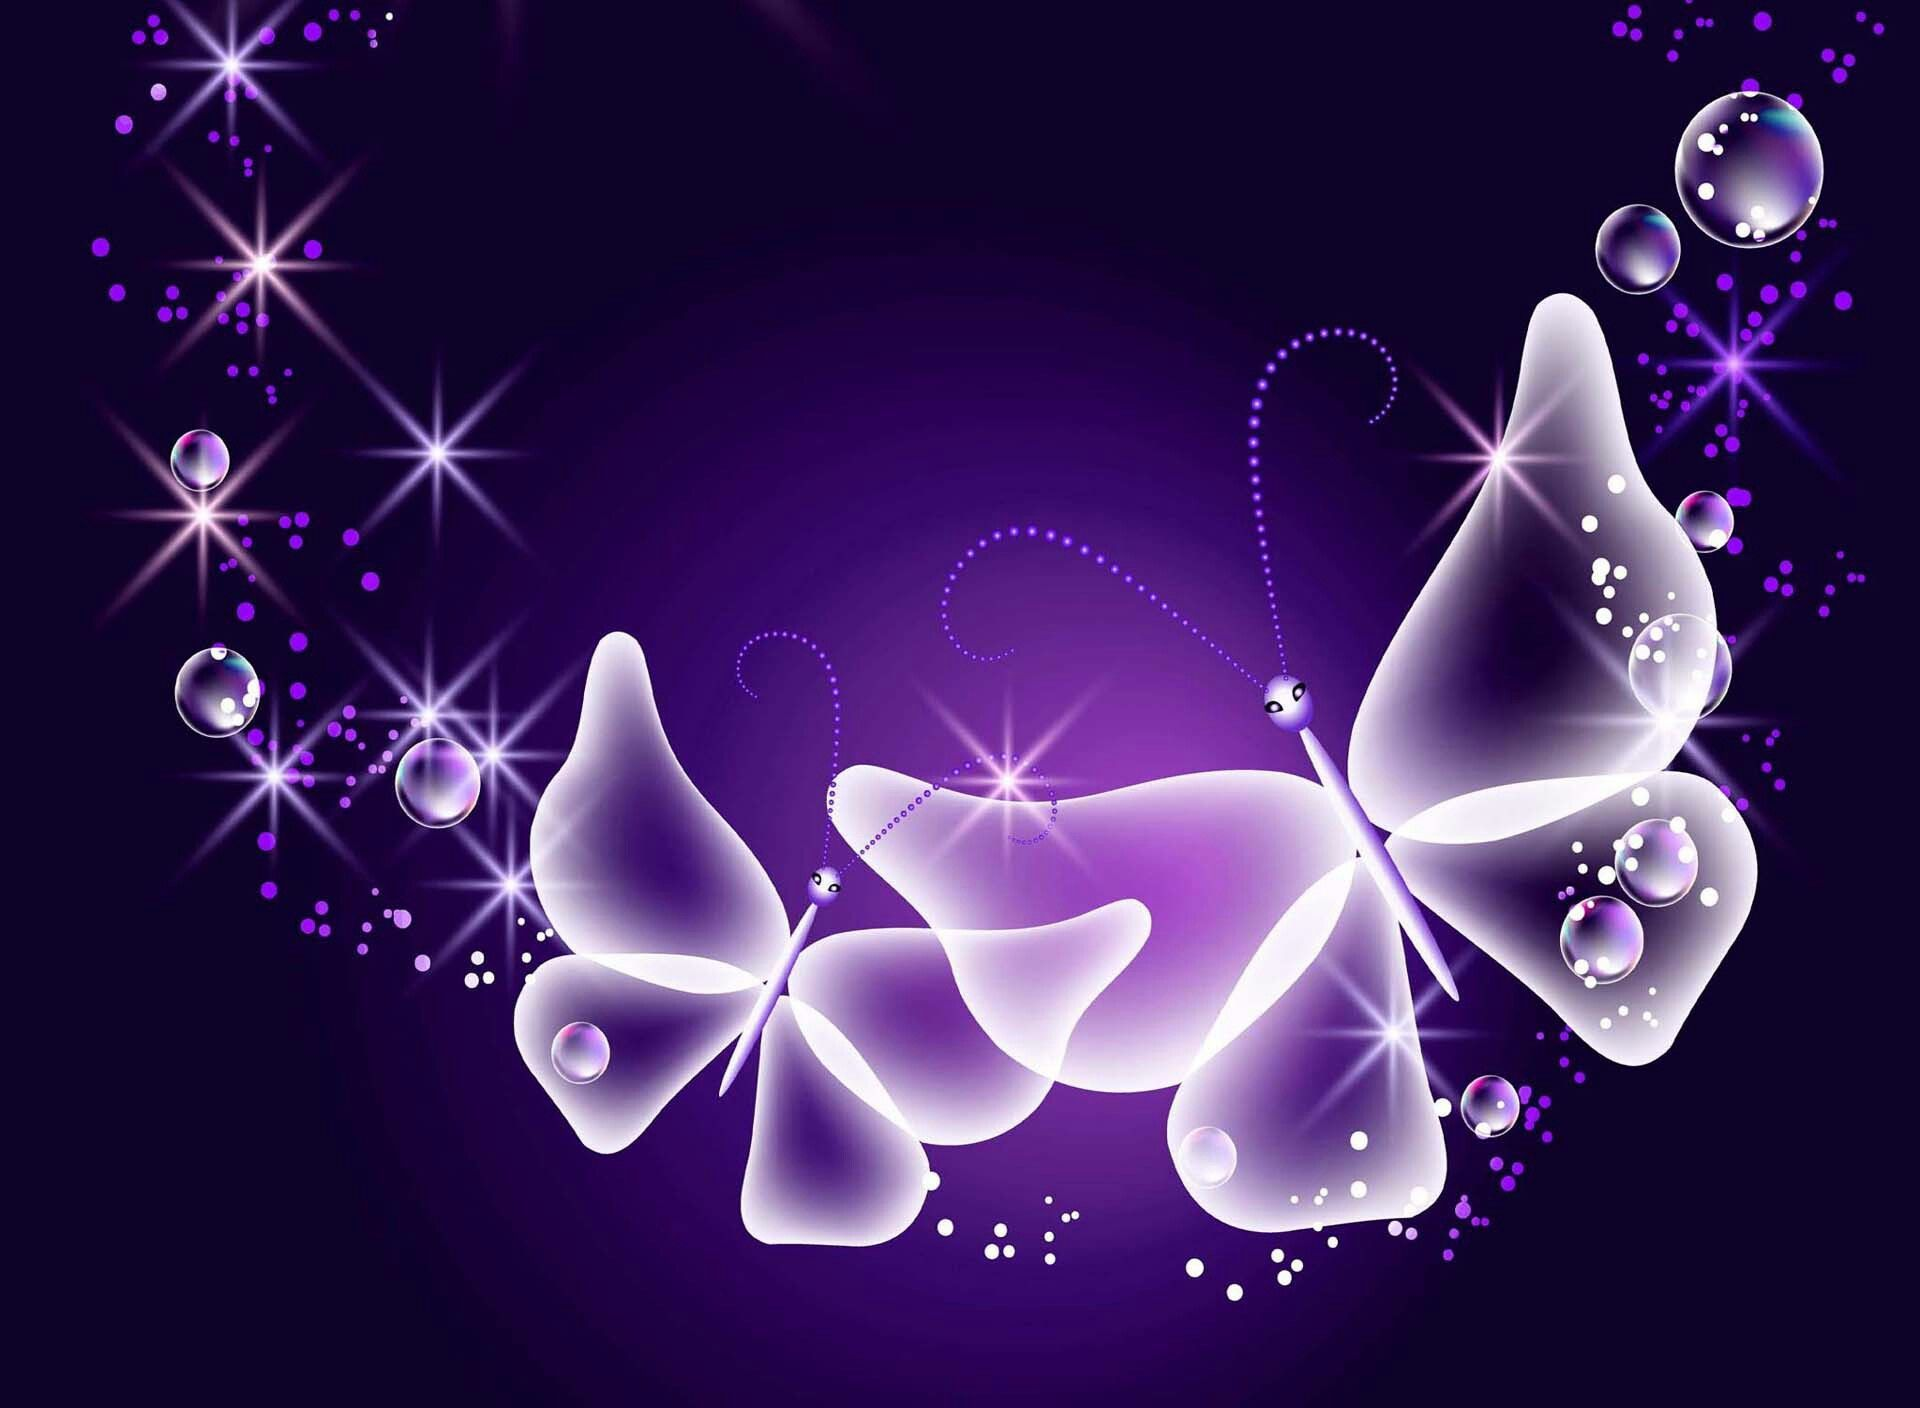 Blue and Purple Butterflies Wallpapers - Top Free Blue and ...